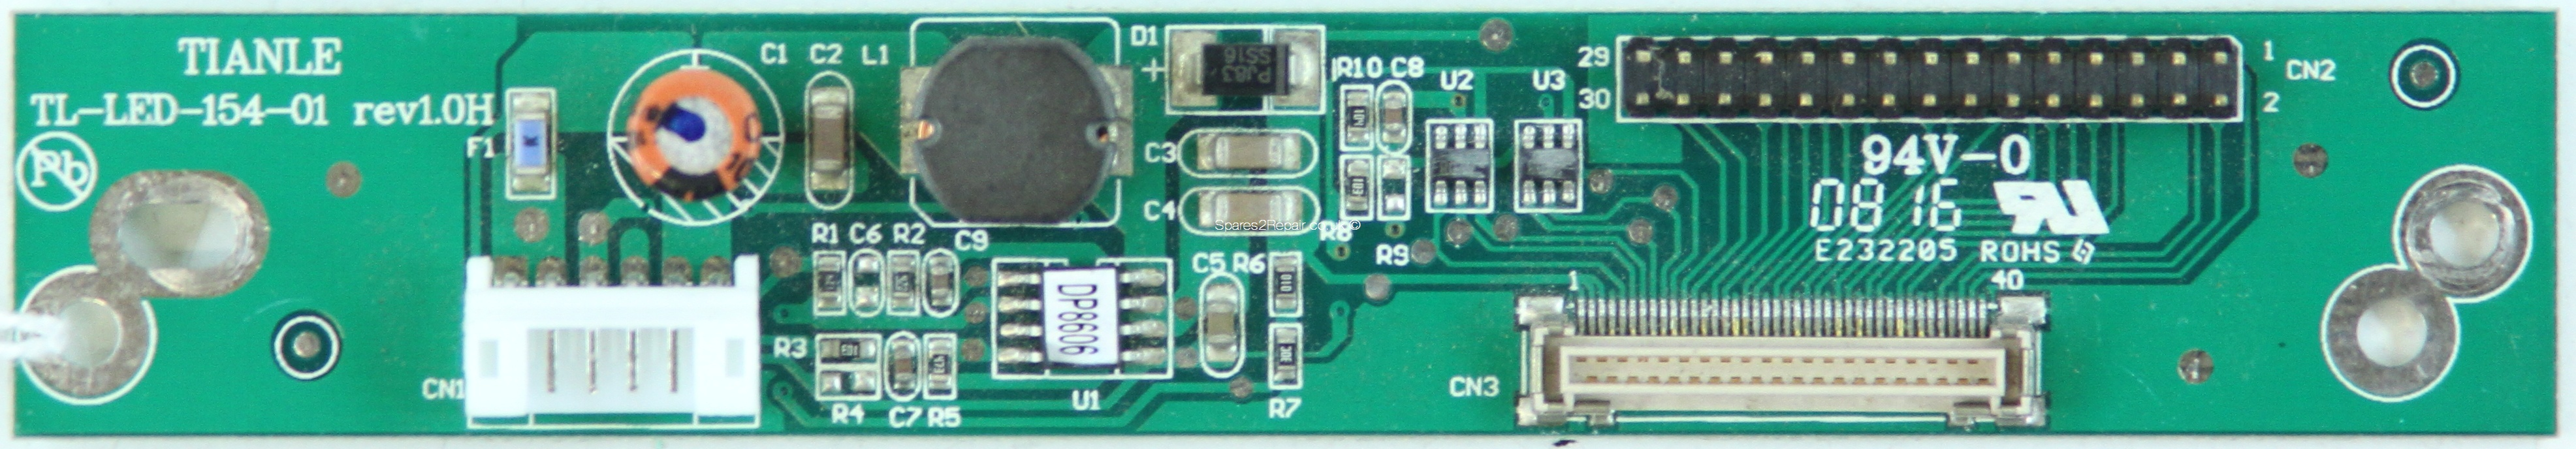 Cello C1599F - LED Driver Board - TL-LED-154-01 - rev1.0H